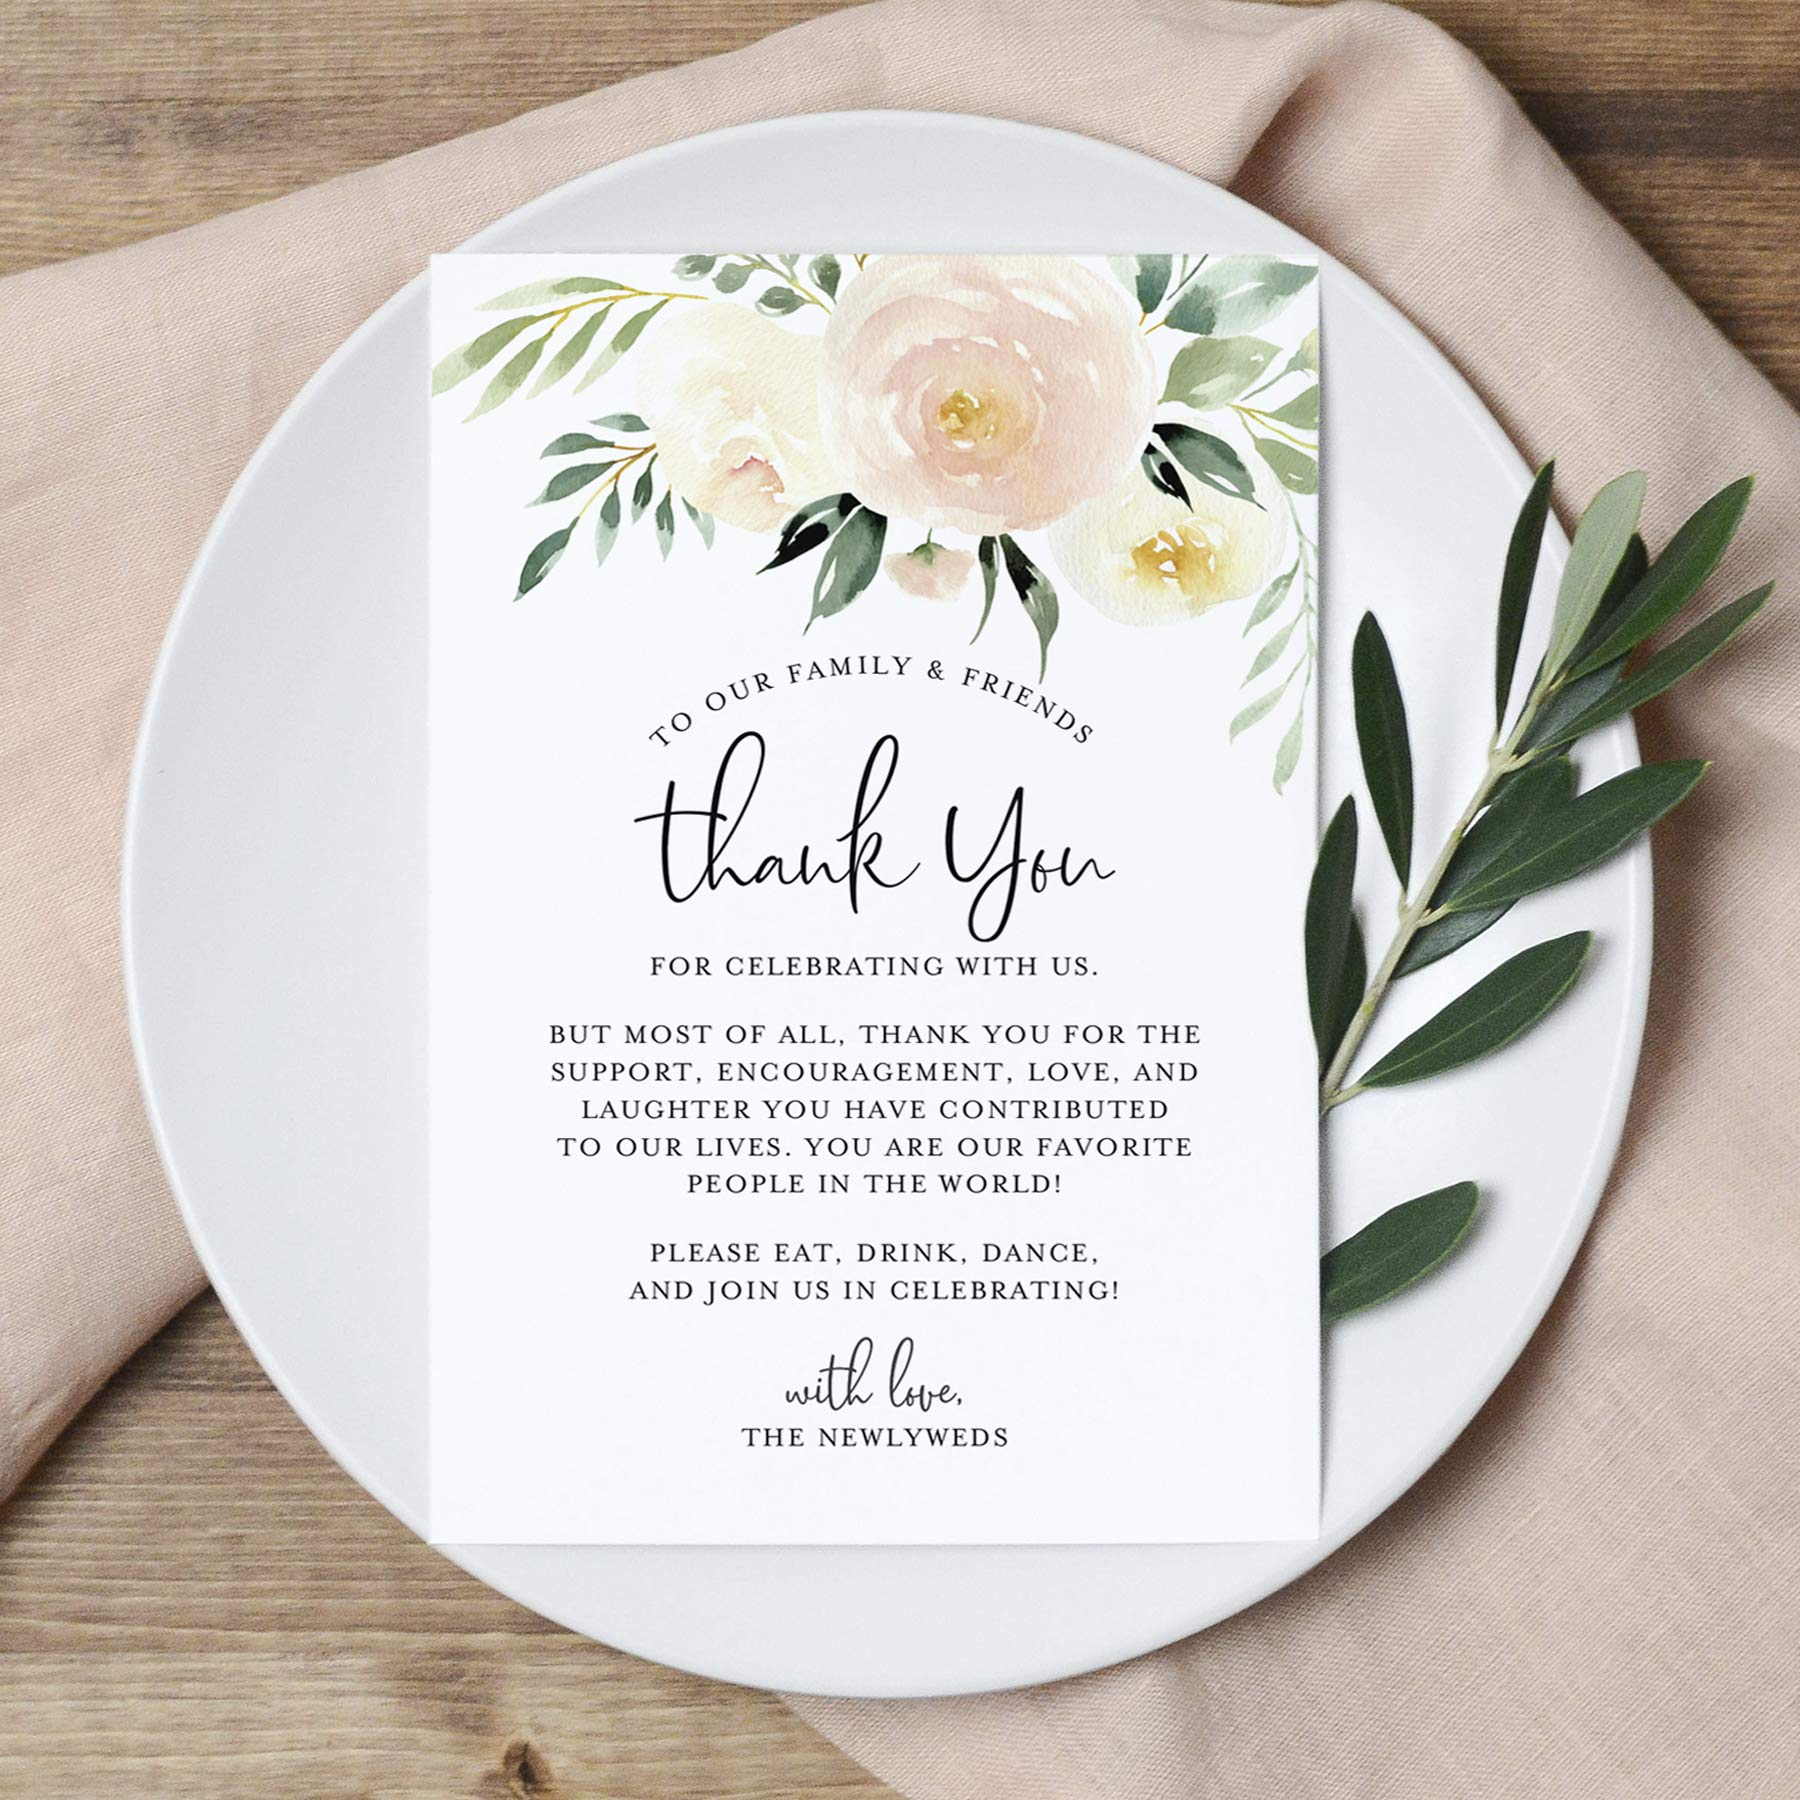 Floral Cards and Gifts Table Sign Template Cards /& Gifts Gift Table Sign Floral Sage Blush Table Top Sign GRACE Printable Wedding Sign